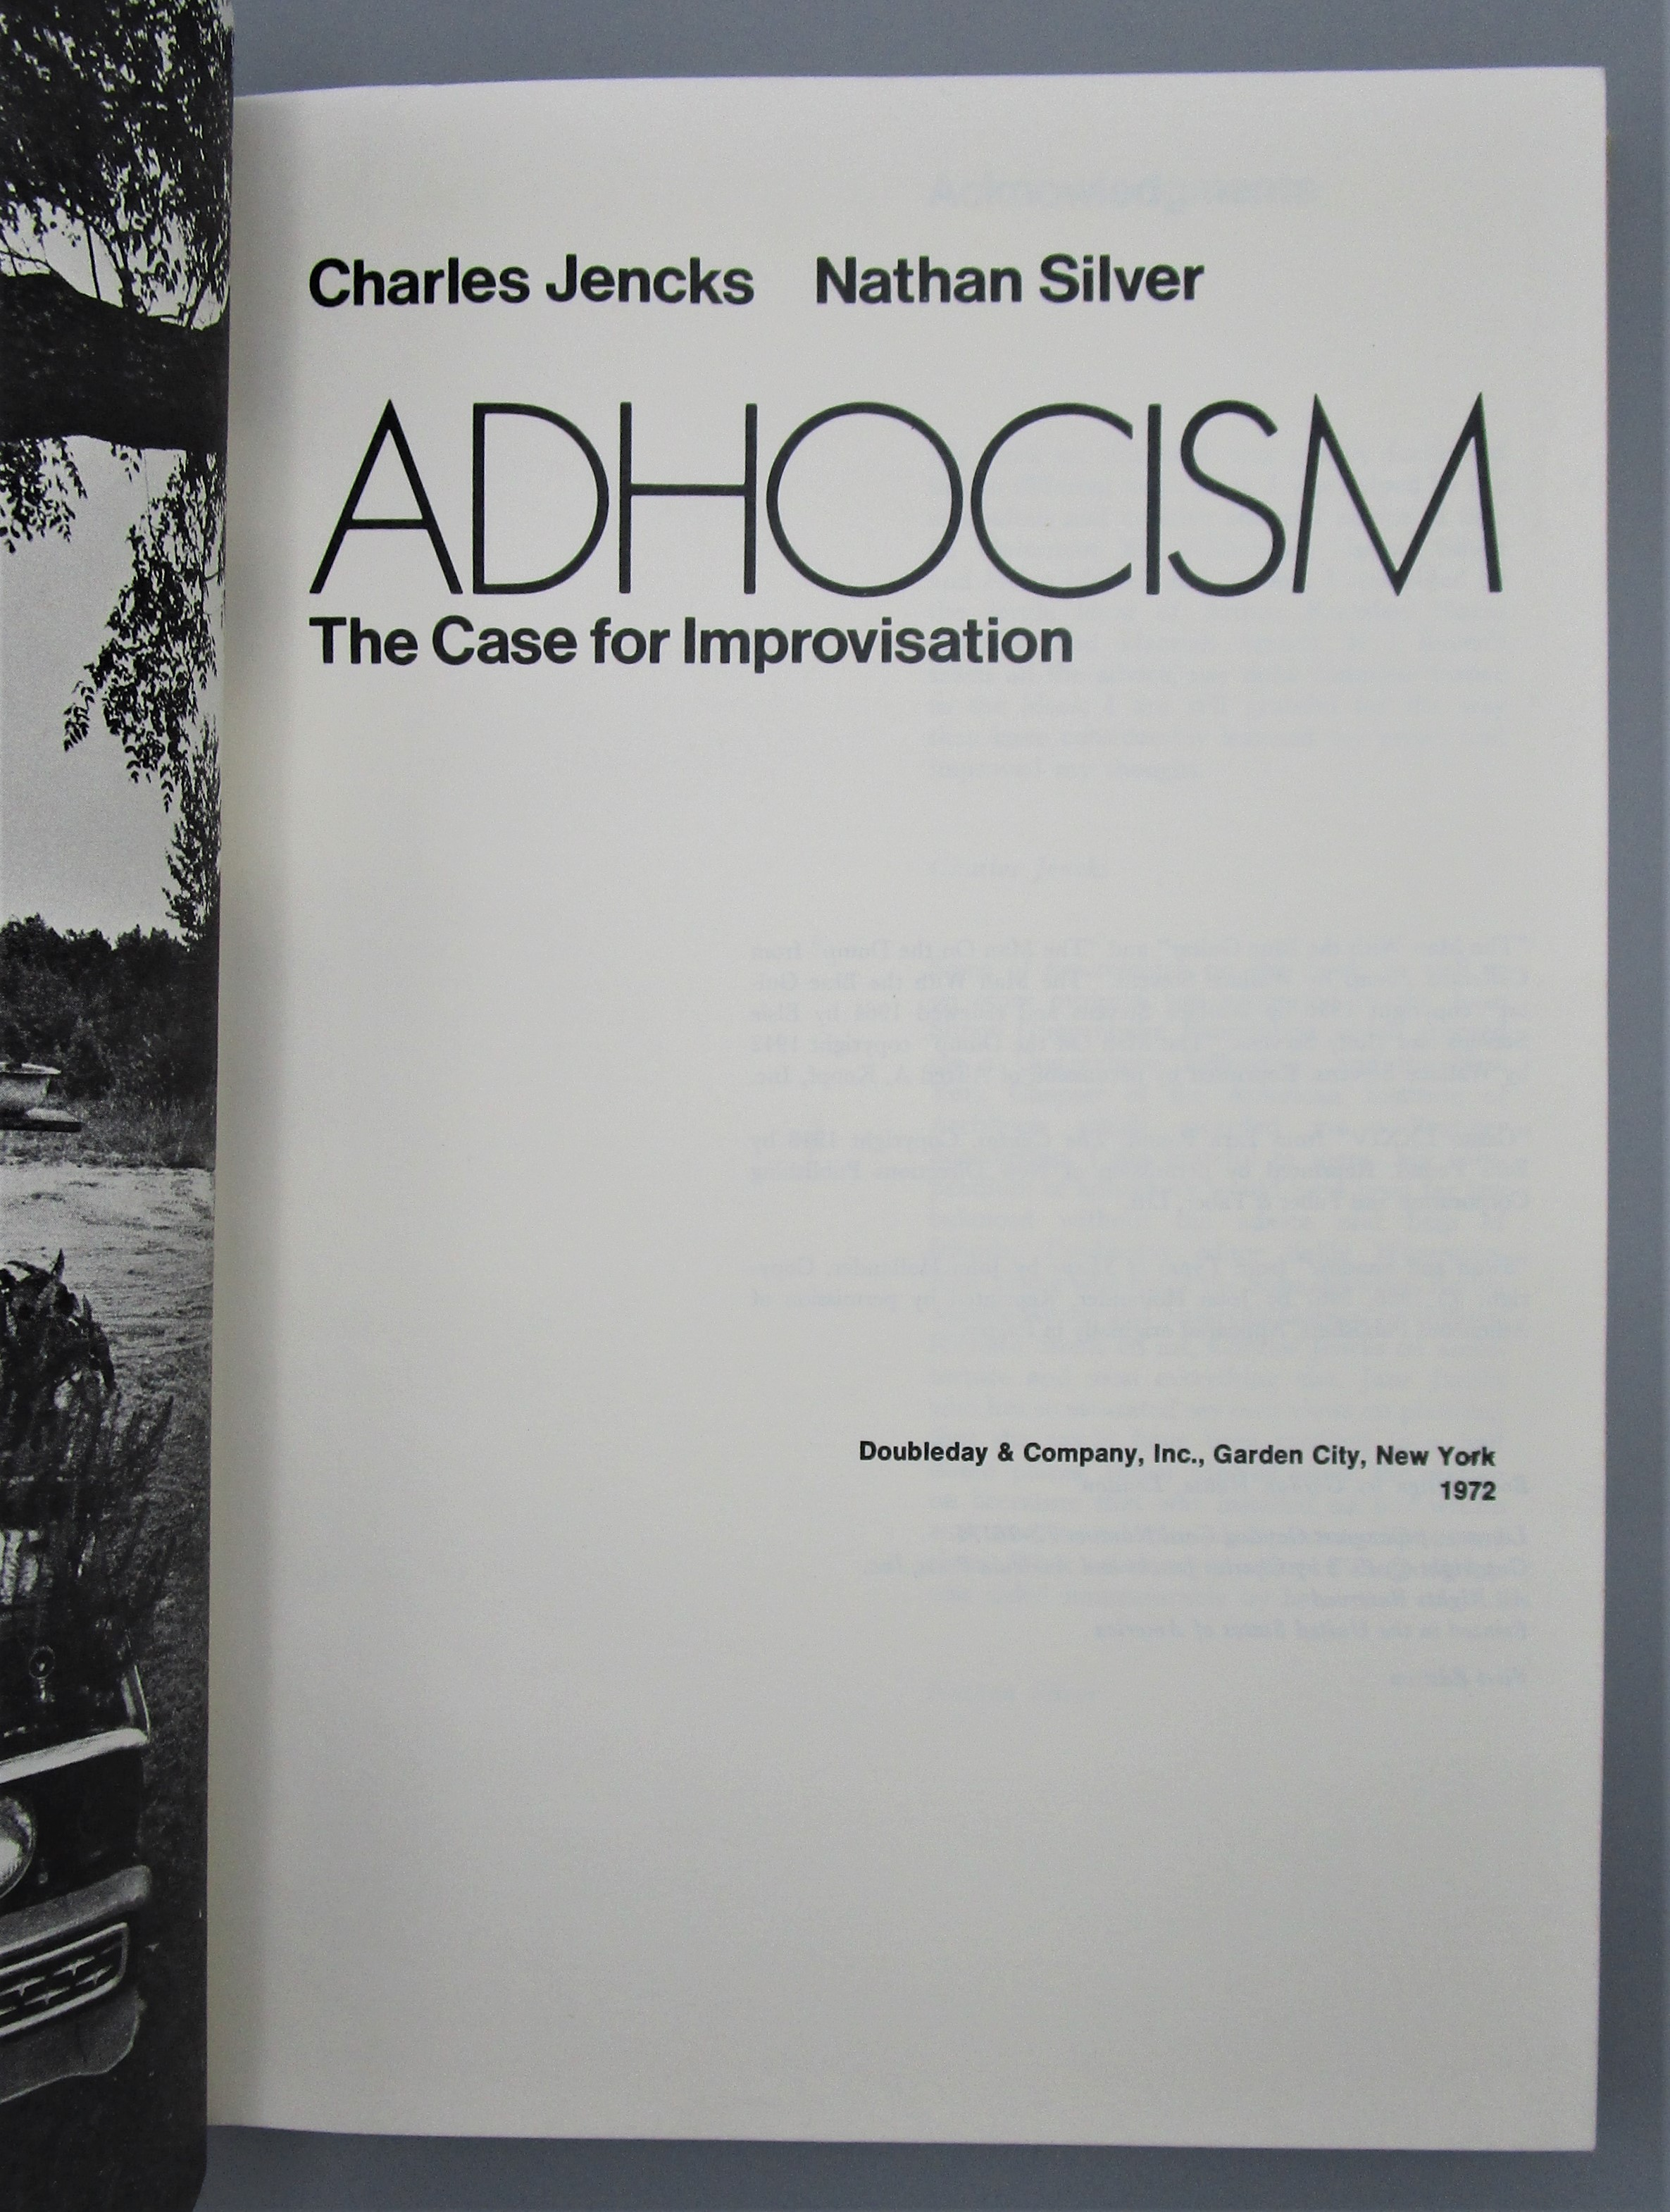 ADHOCISM: THE CASE FOR IMPROVISATION, by Charles Jencks & Nathan Silver  - 1972 [1st Ed]